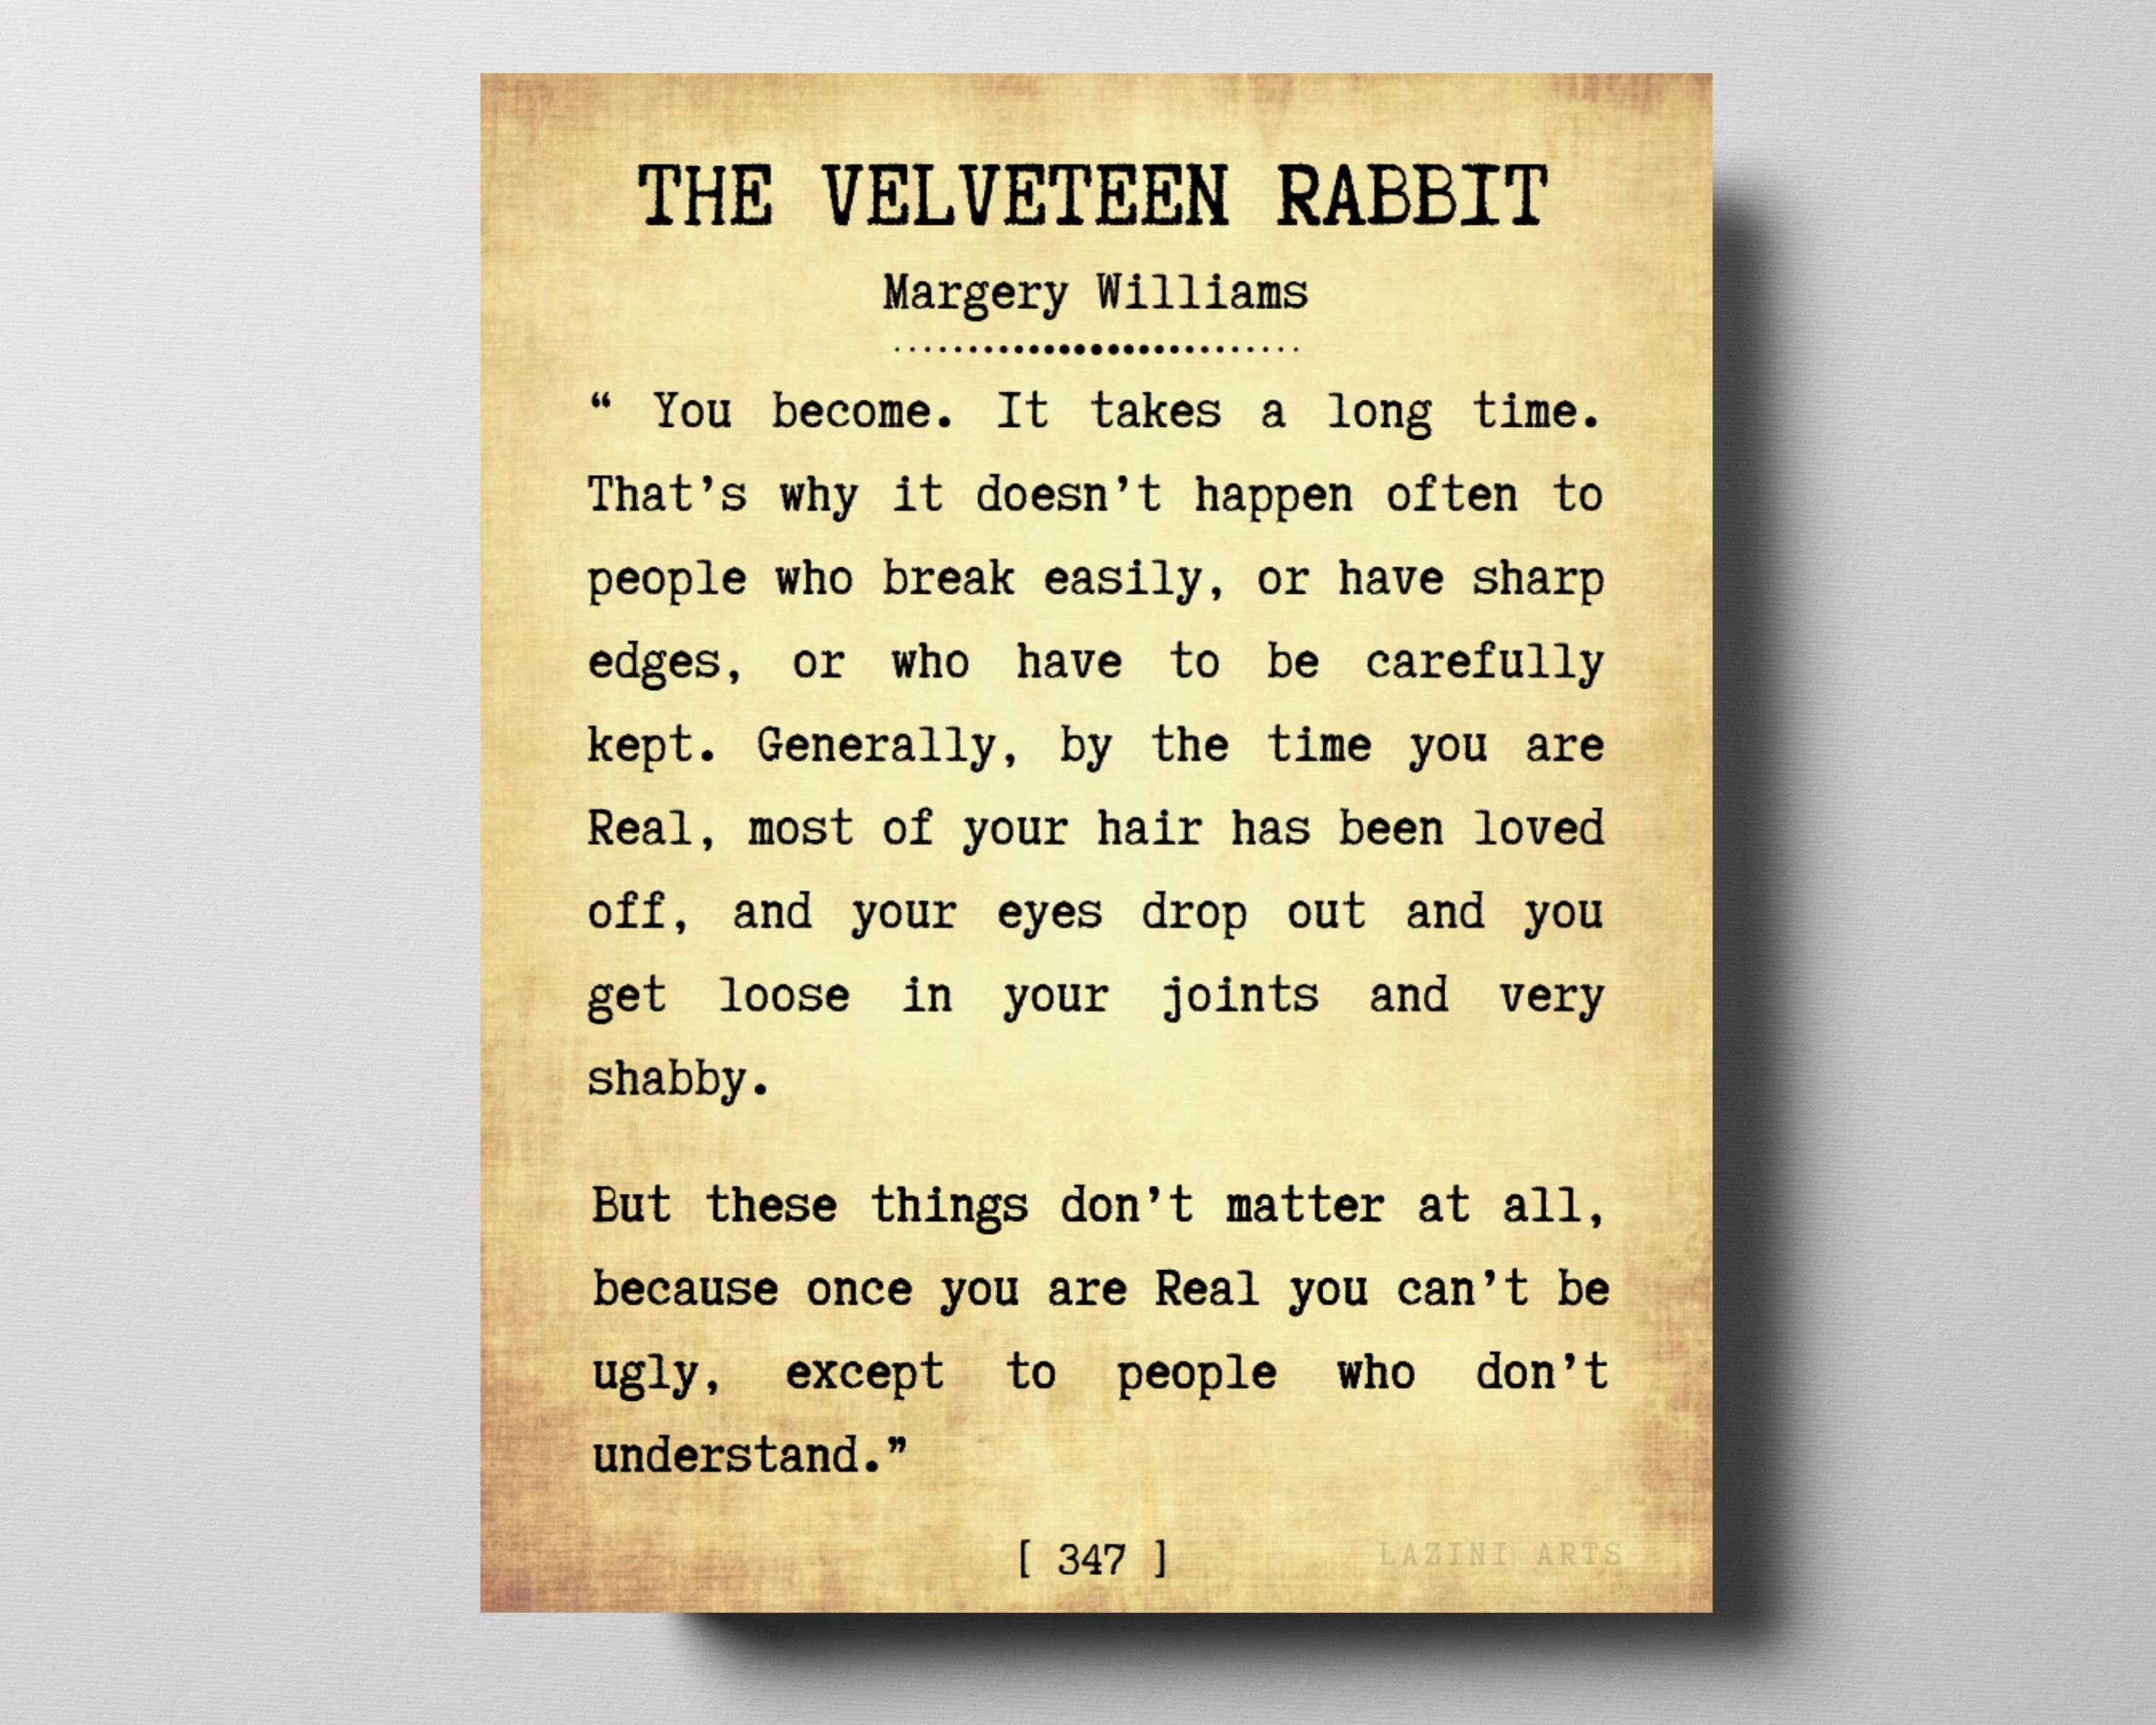 The Velveteen Rabbit By Margery Williams Typewriter Font